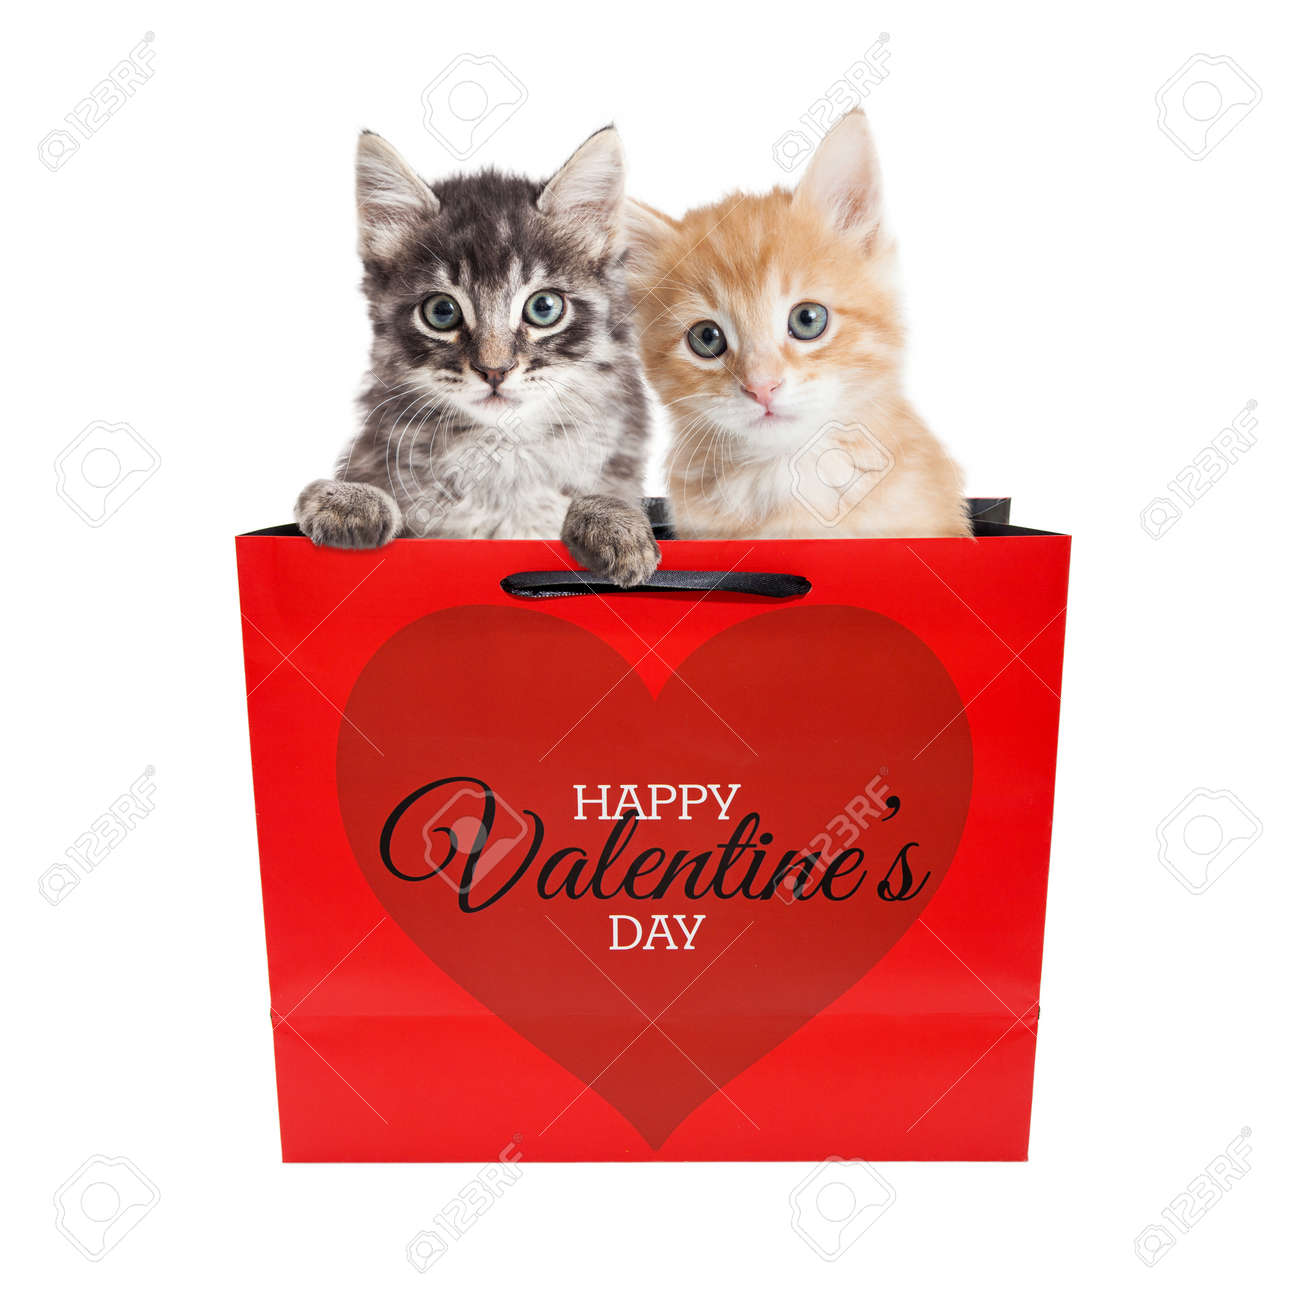 Two Cute Kittens In A Valentine S Day Gift Bag Isolated On White